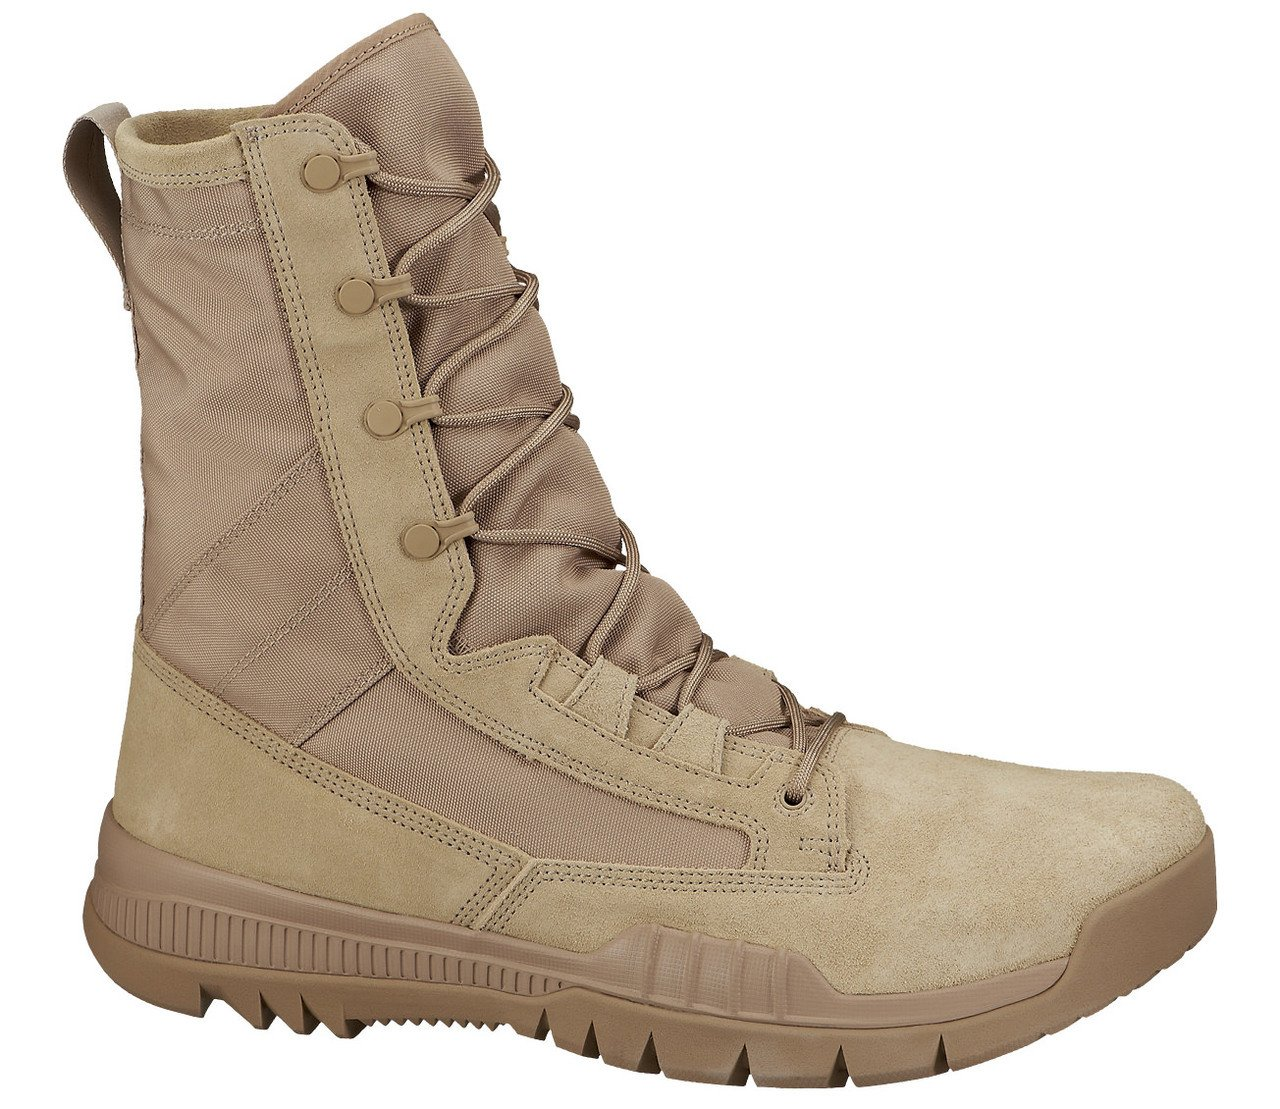 Buy Nike Military Shoes Now!